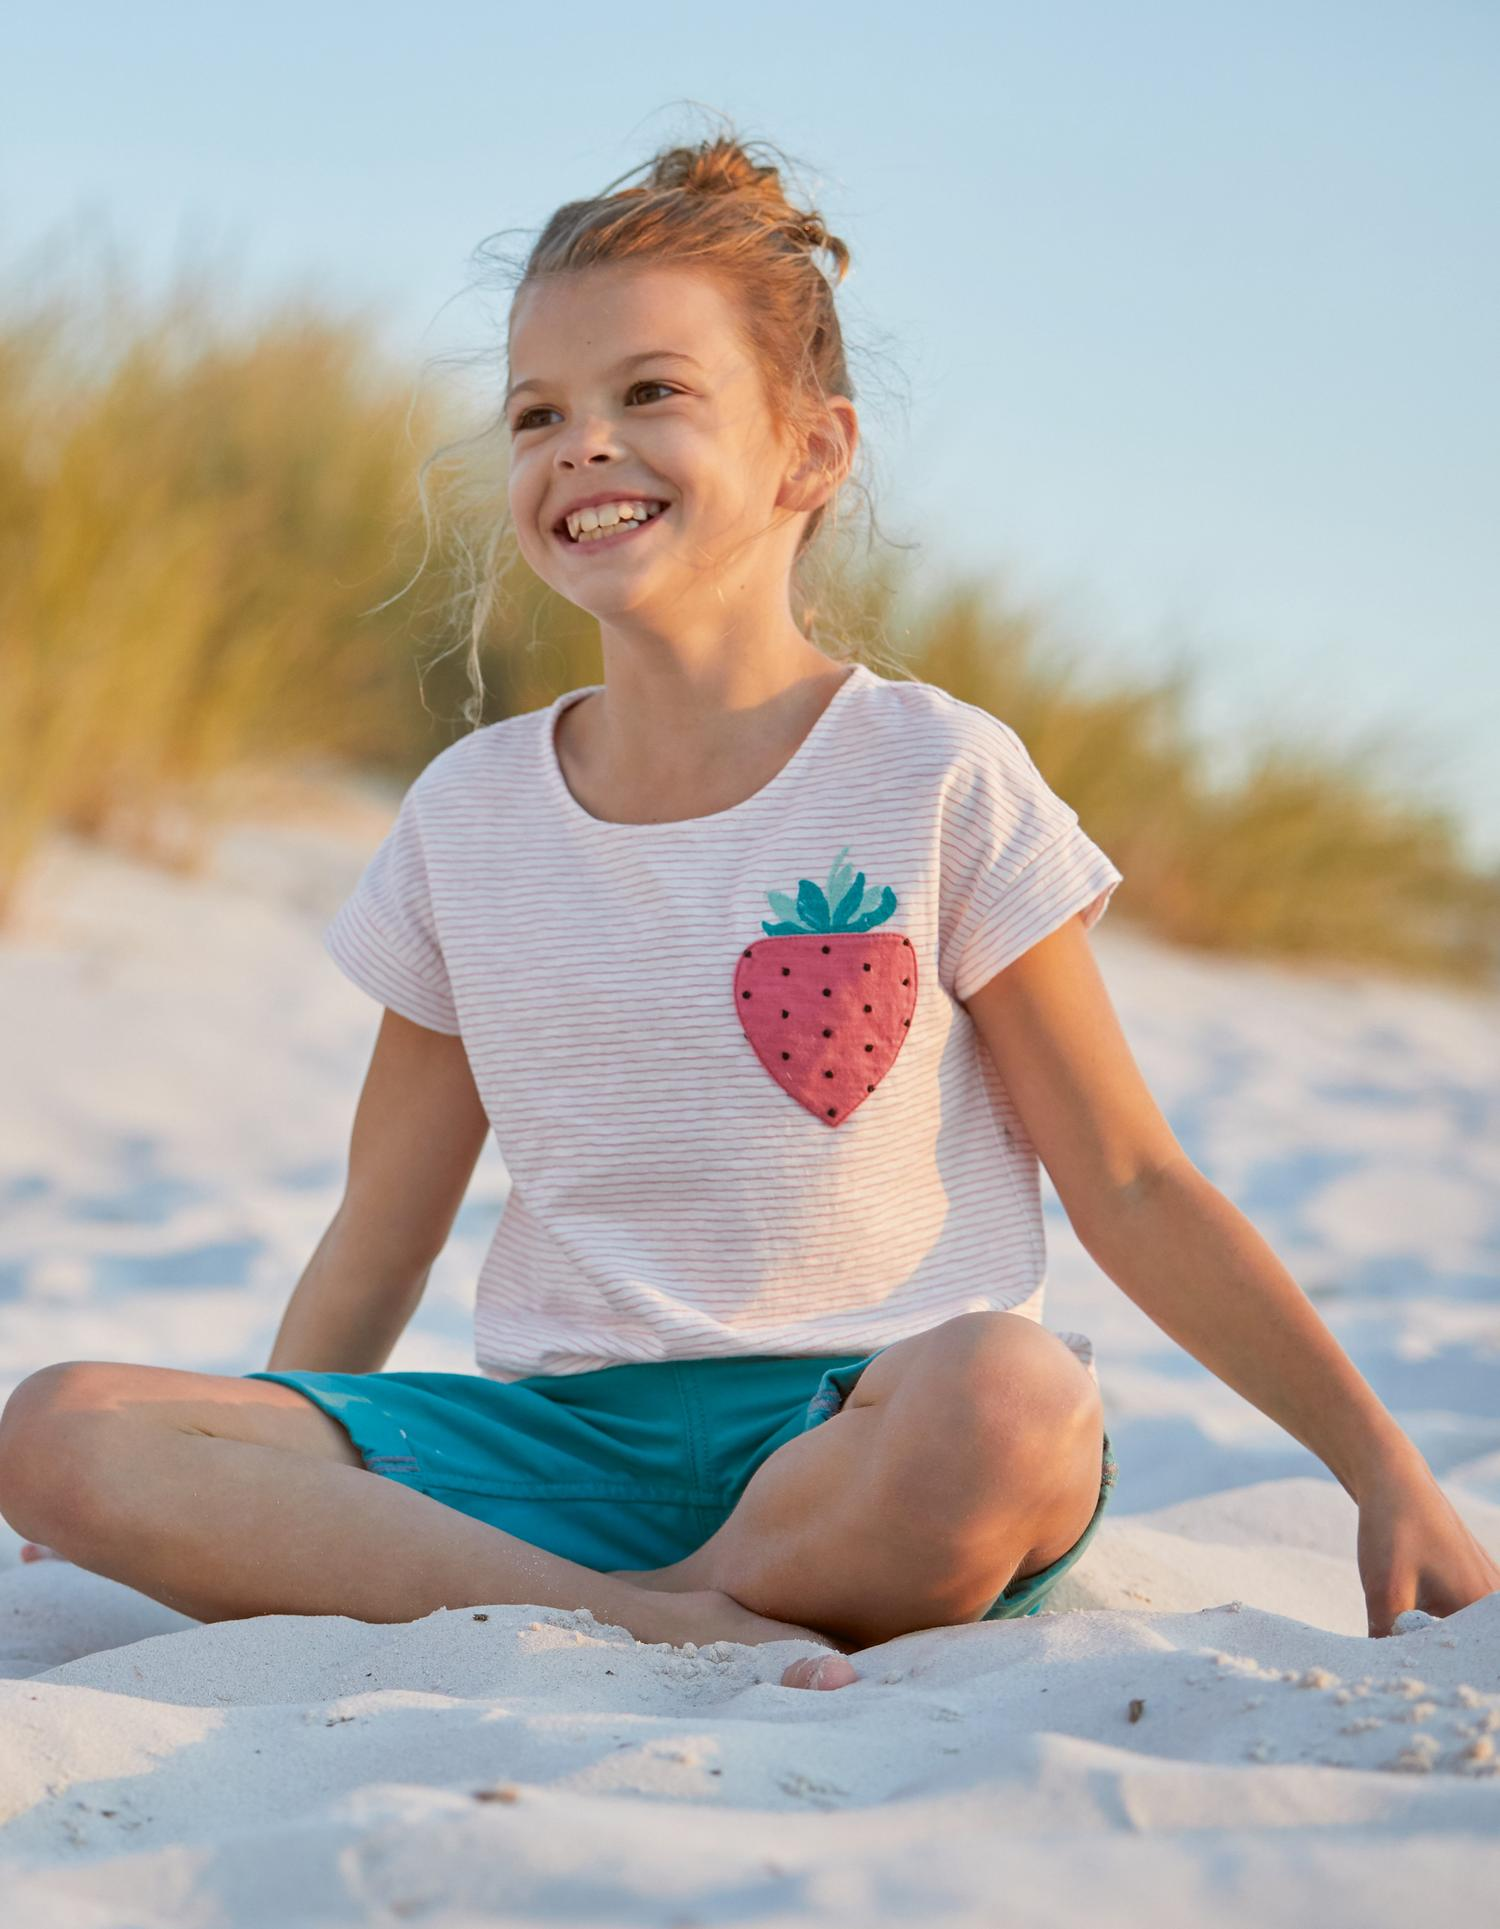 Fatface girl model wearing a light pink top with a strawberry print and turquoise shorts.